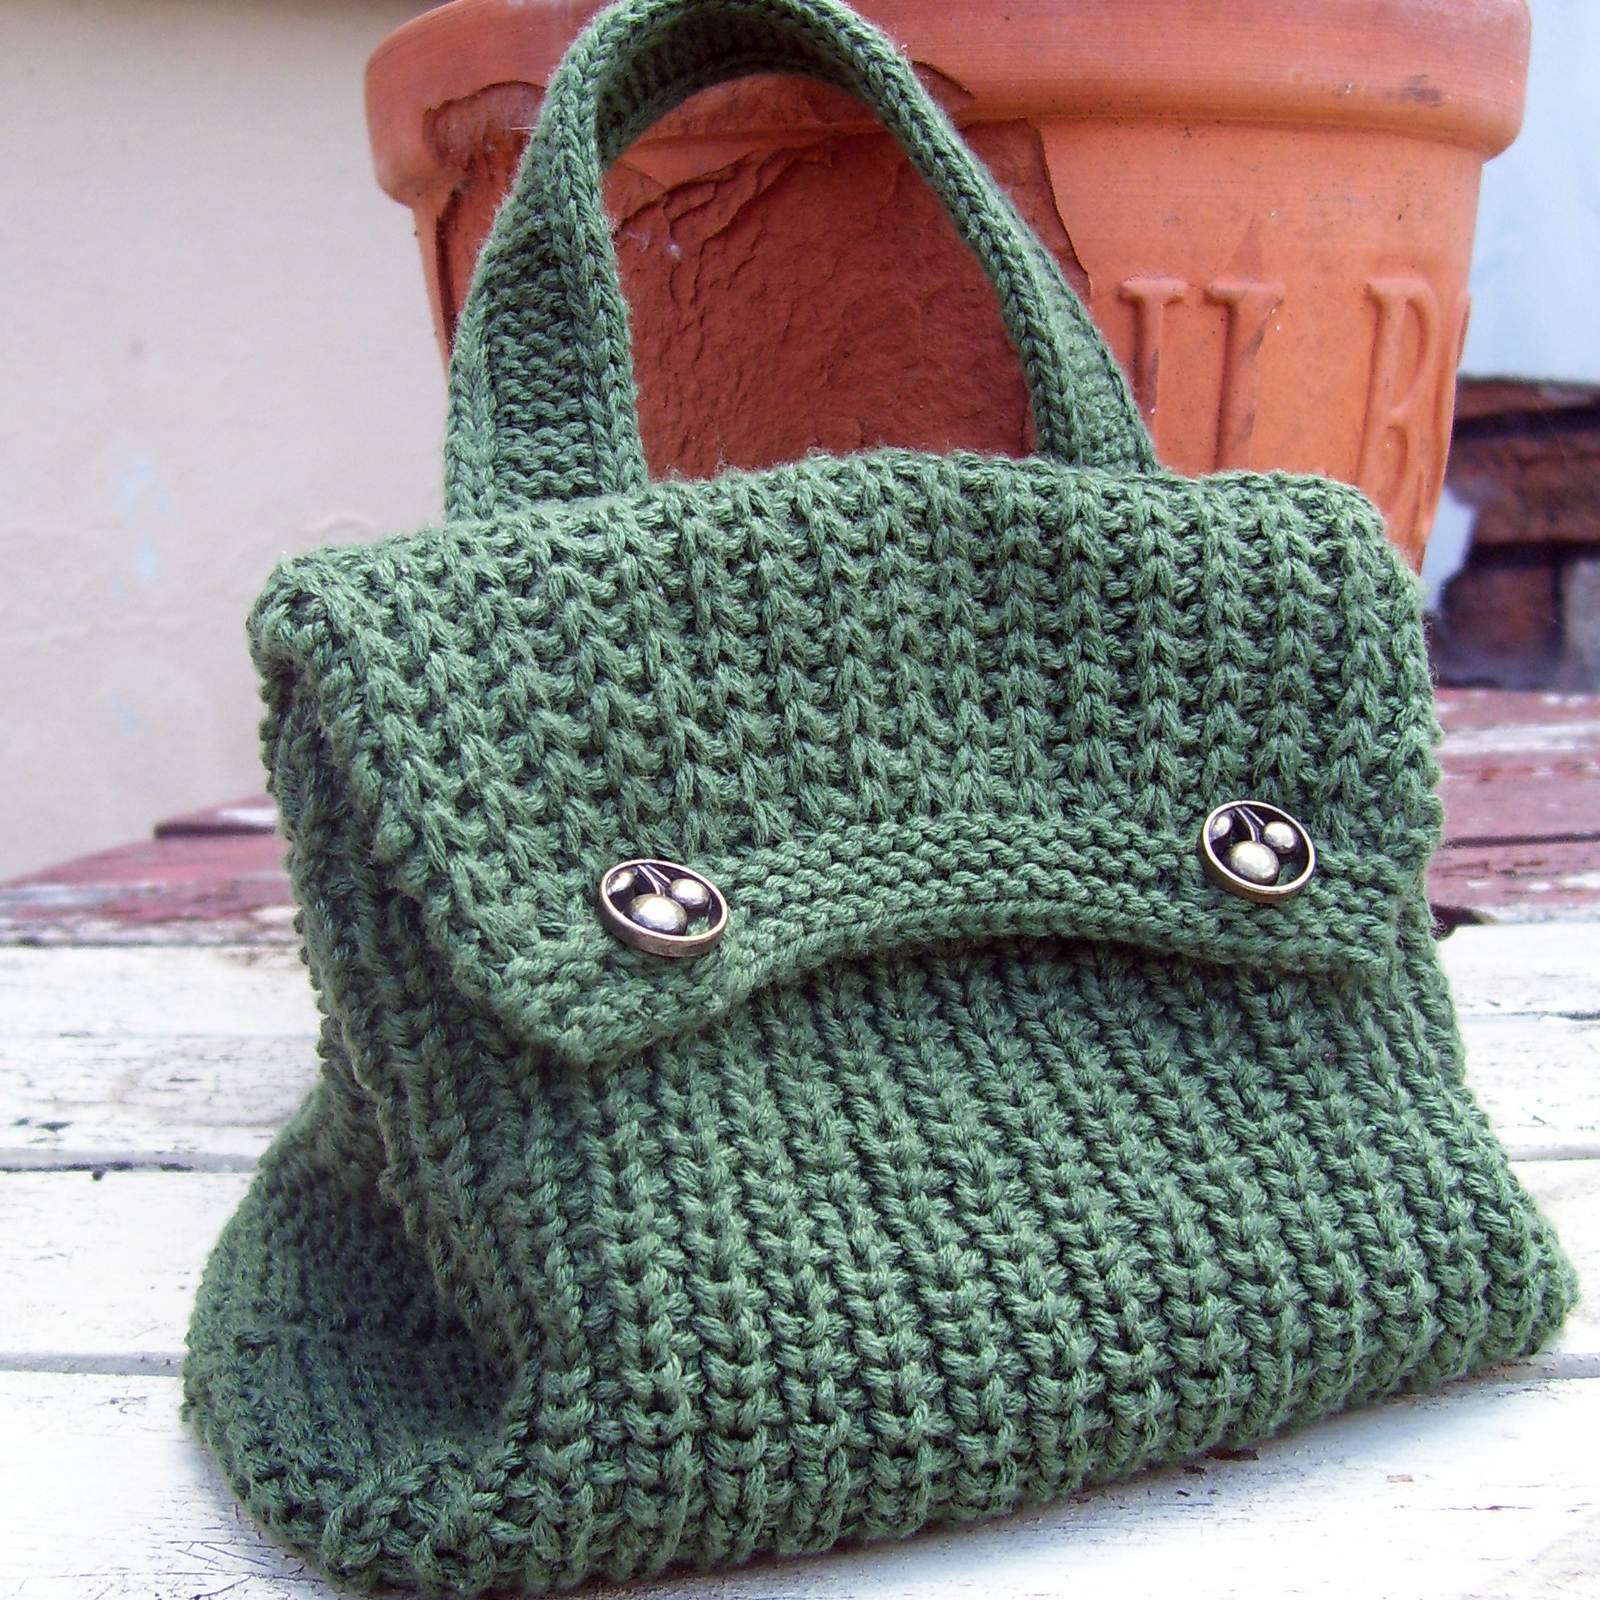 Crochet Tote Bag Free Pattern : Over 200 Free Knitted Bags, Purses and Totes Knitting Patterns